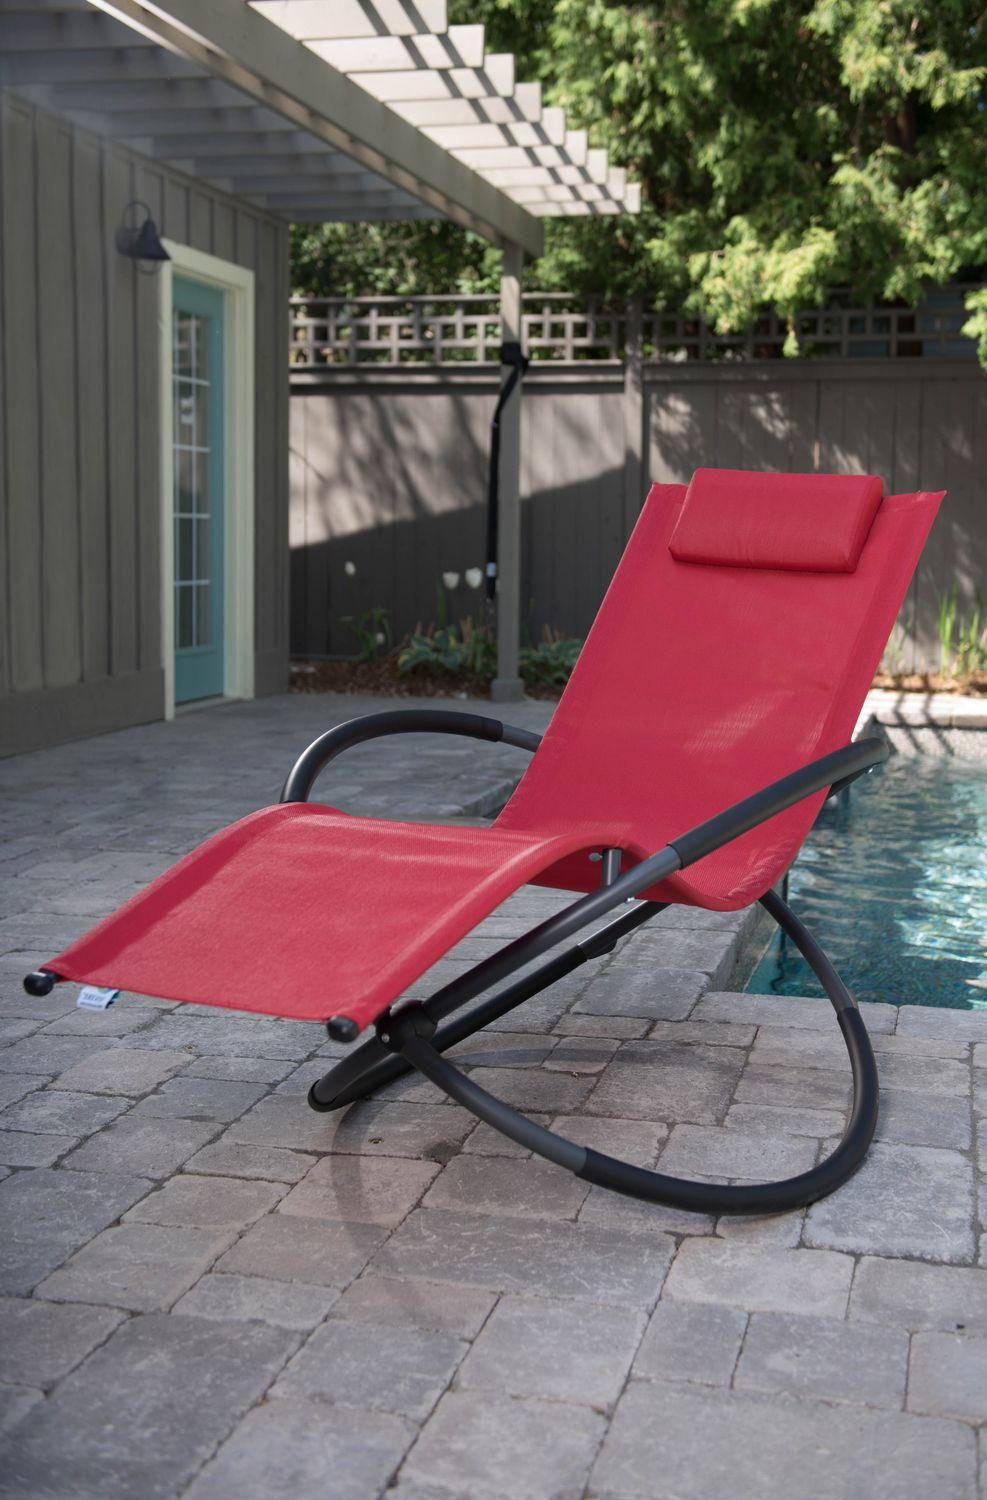 Ergo Lounger | Orbital Lounger | Lounger Chair